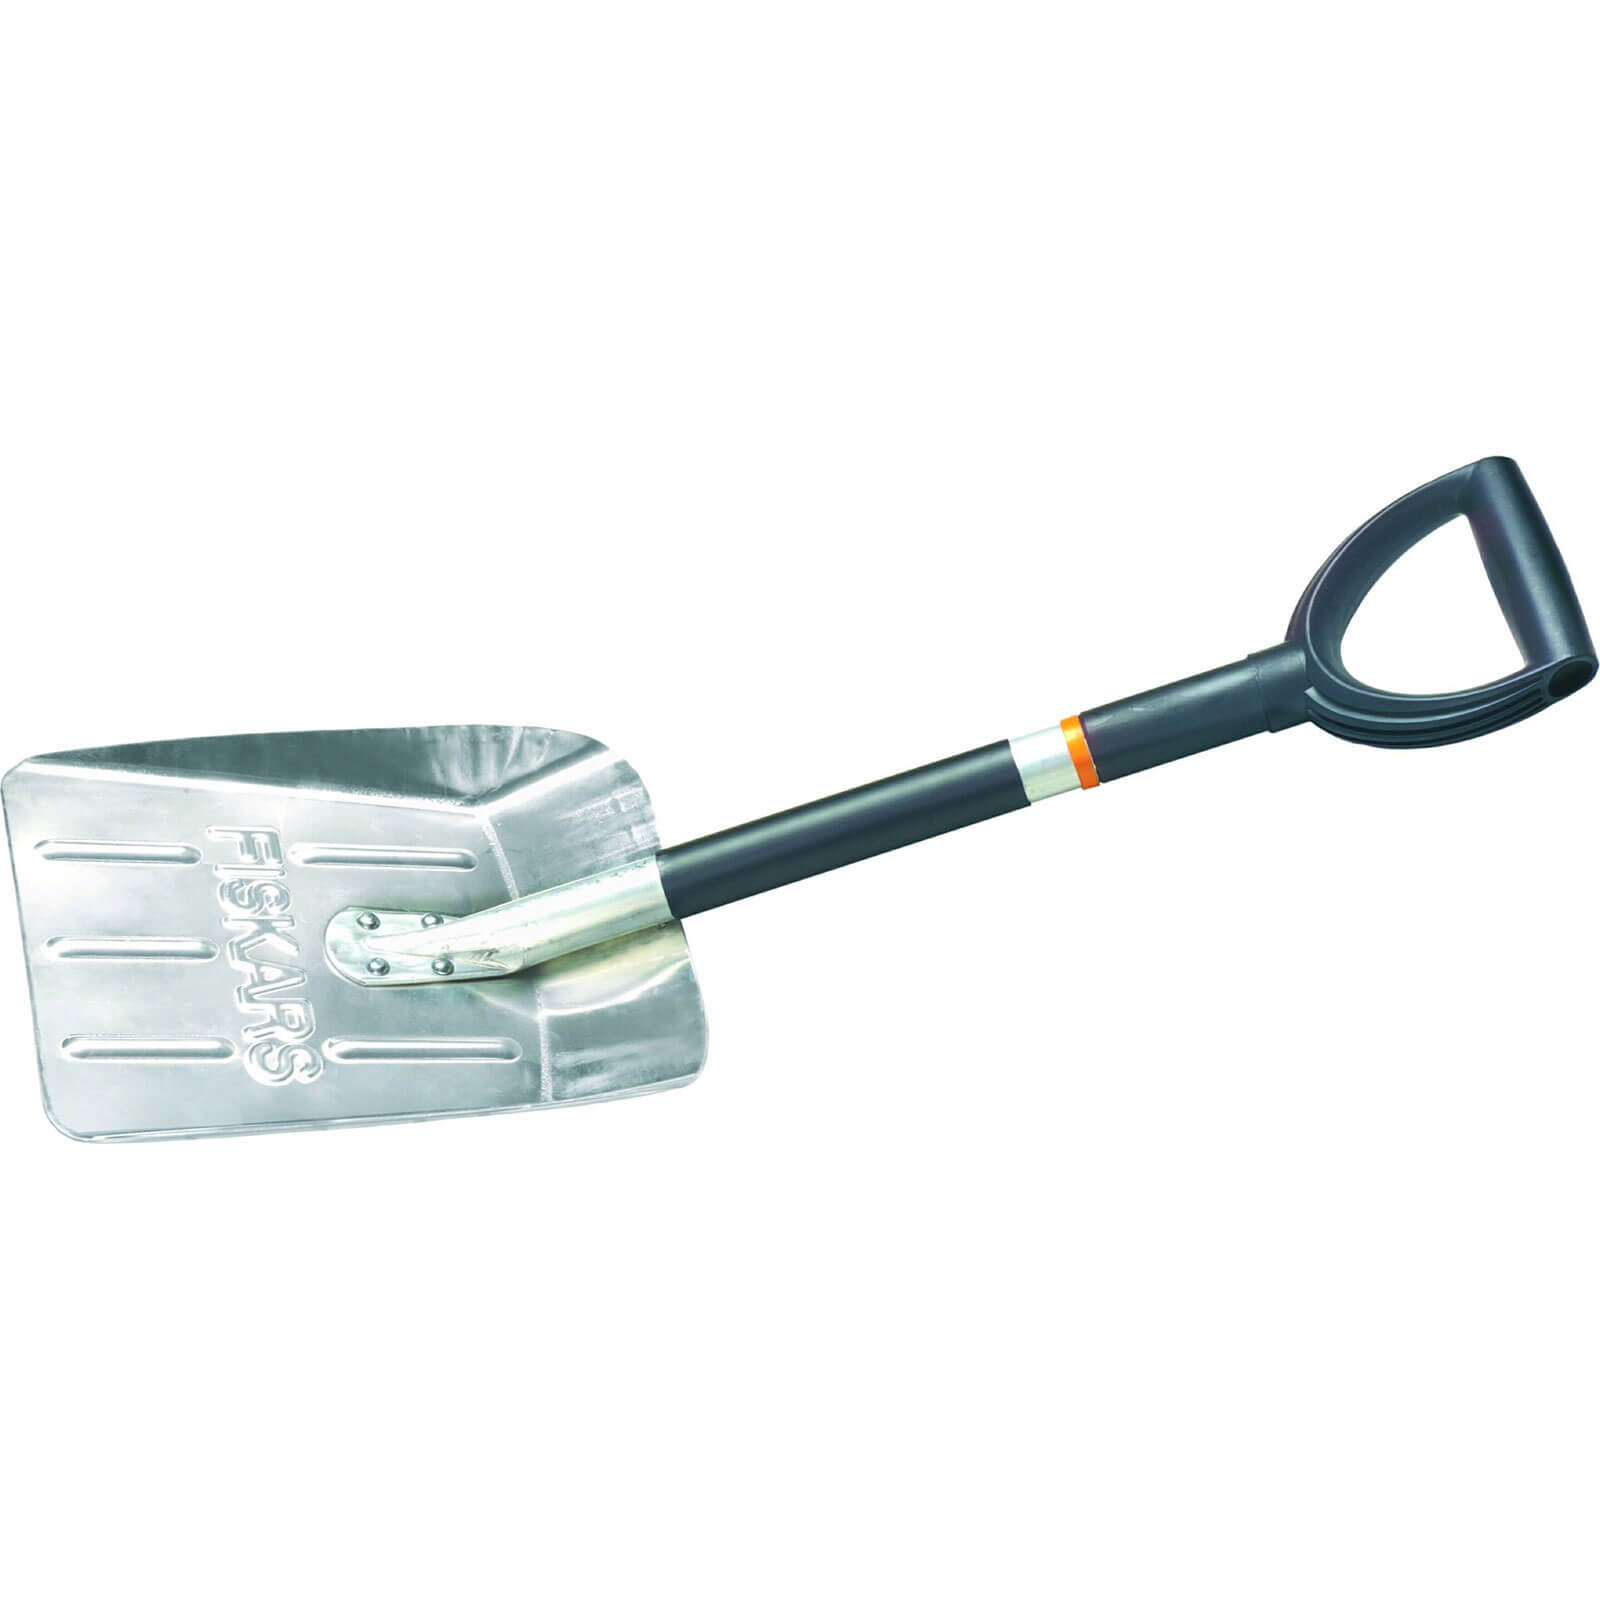 Image of Fiskars Aluminium Car Snow Shovel 710mm